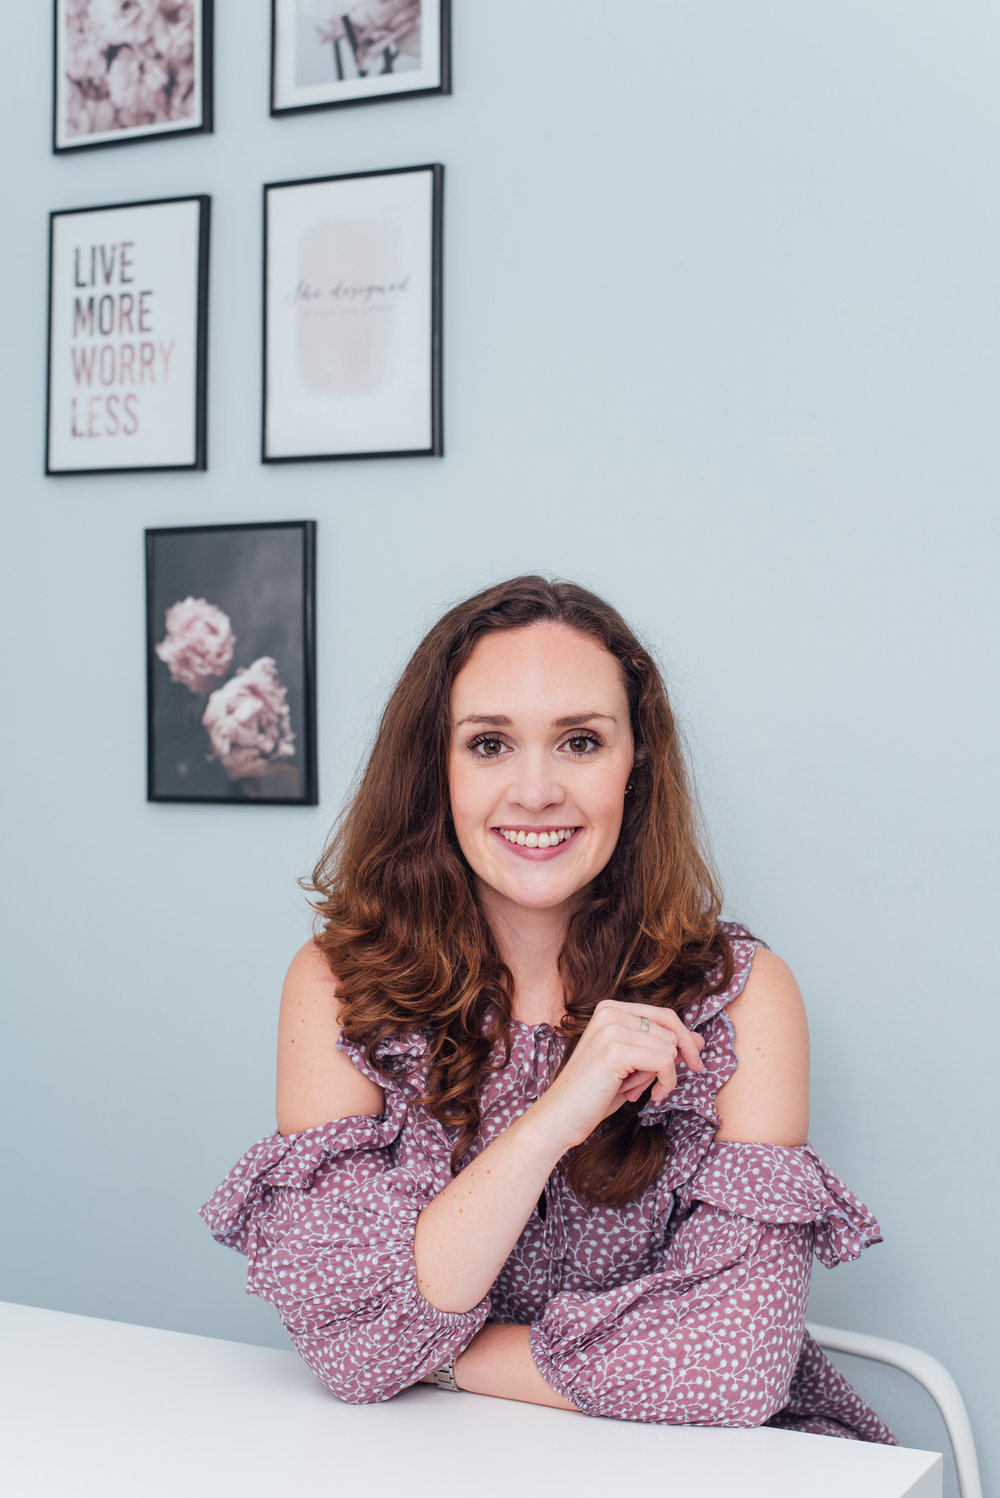 Marketing and Blog Coach, Holly of A Branch of Holly